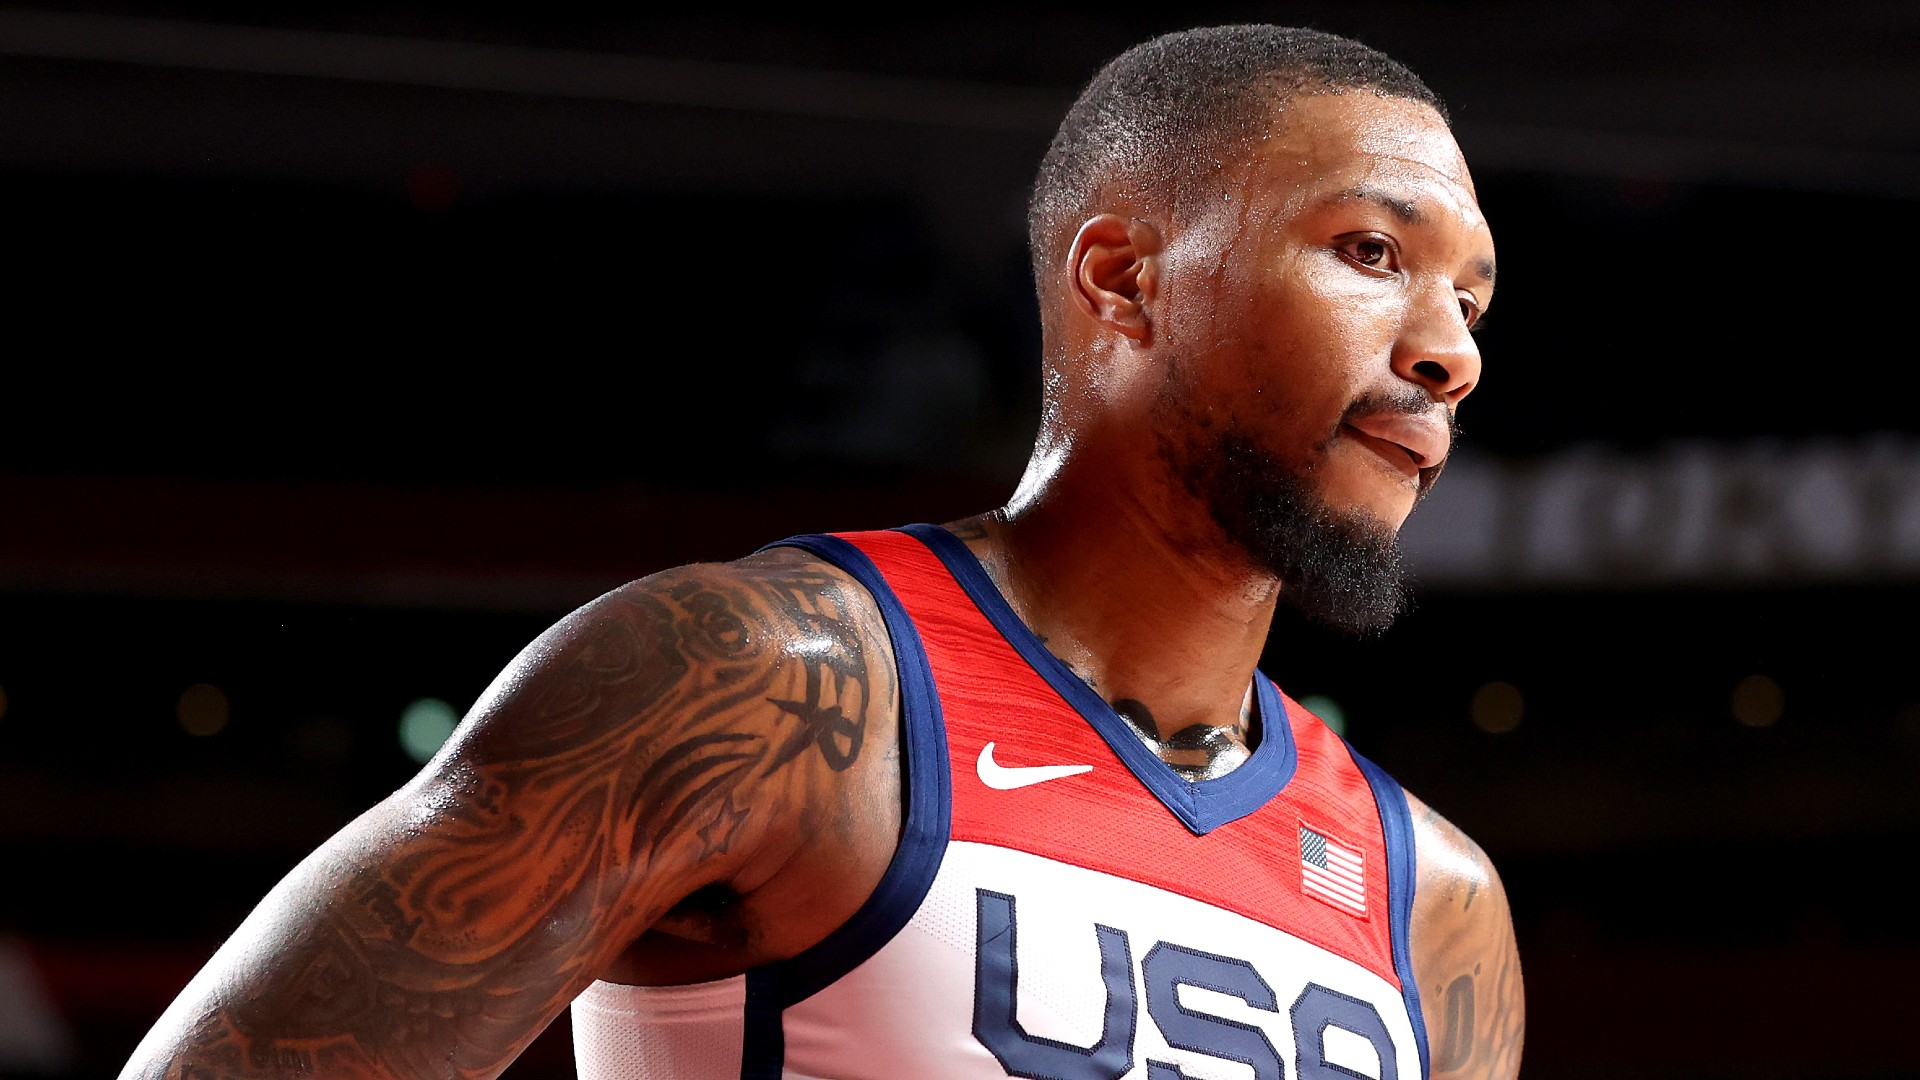 Damian Lillard had to step back so that Team USA could move forward in the pursuit of the Olympic gold medal.